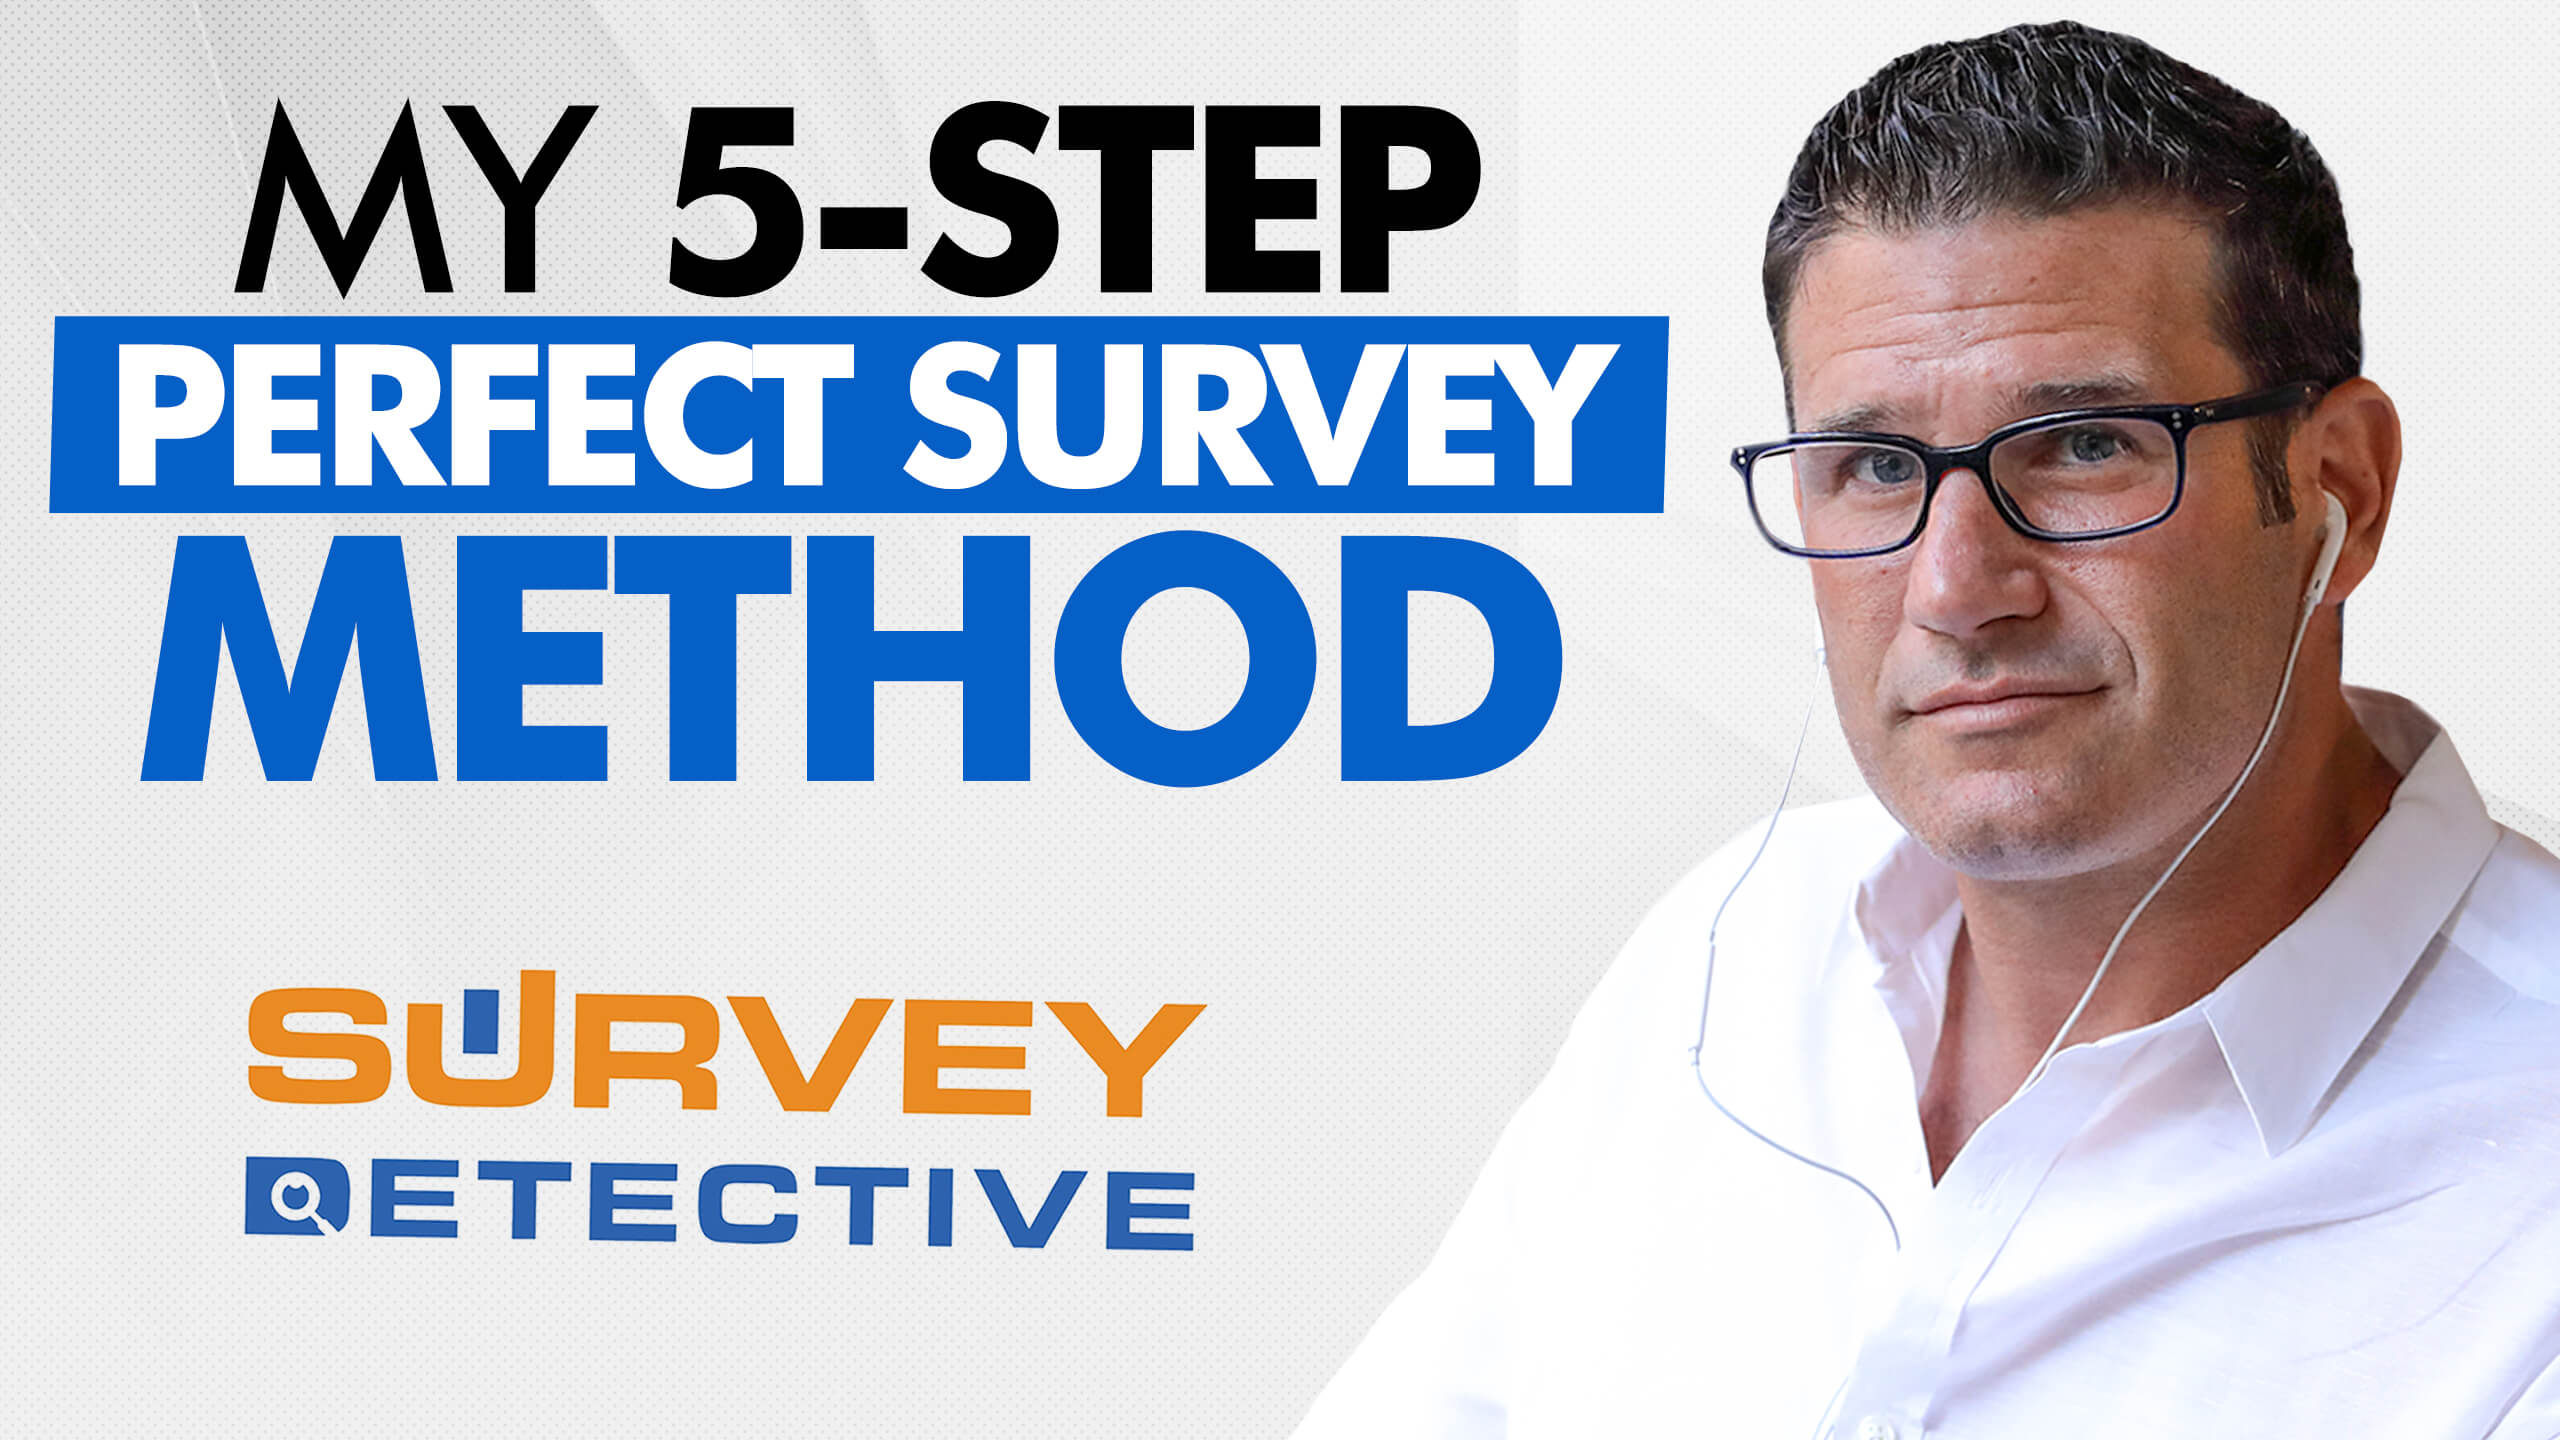 My 5-step Perfect Survey Method: A Bulletproof Way for Generating High-Quality Leads With Surveys with Eric Beer